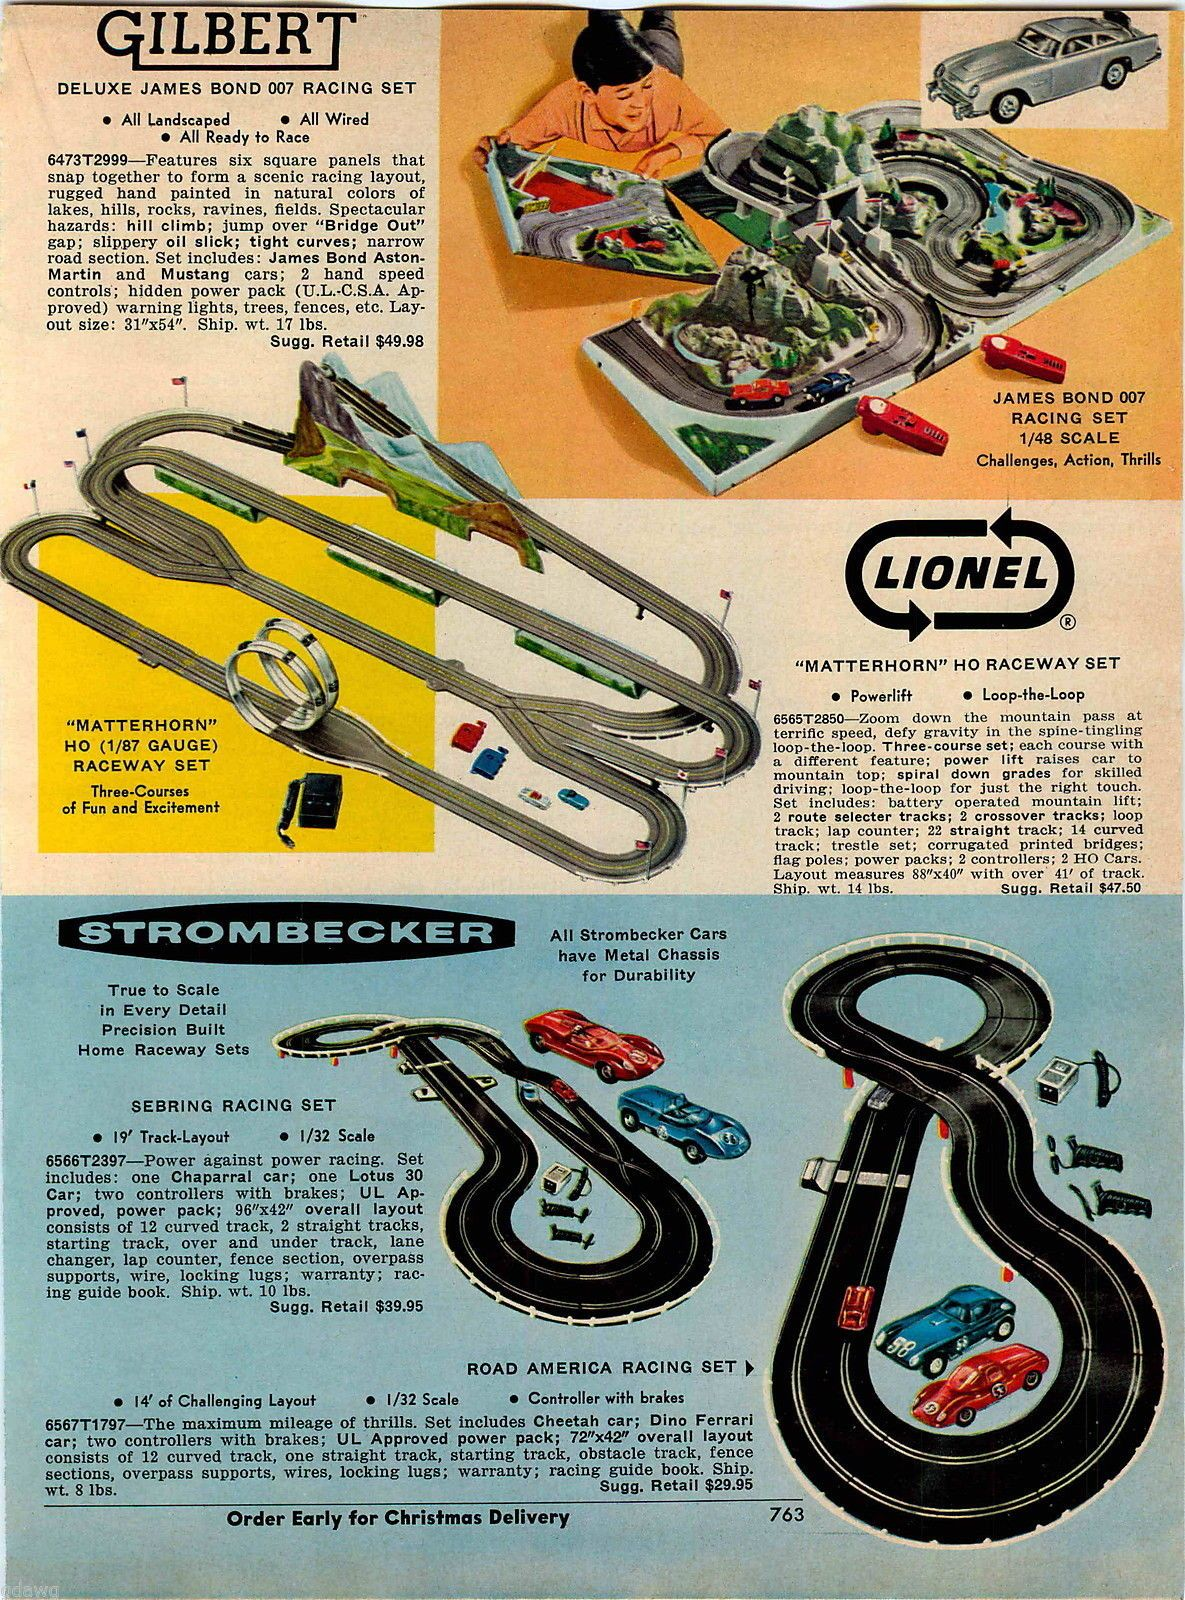 small resolution of 1967 advert gilbert james bond 007 lionel strombecker race car raceway toy sets ebay